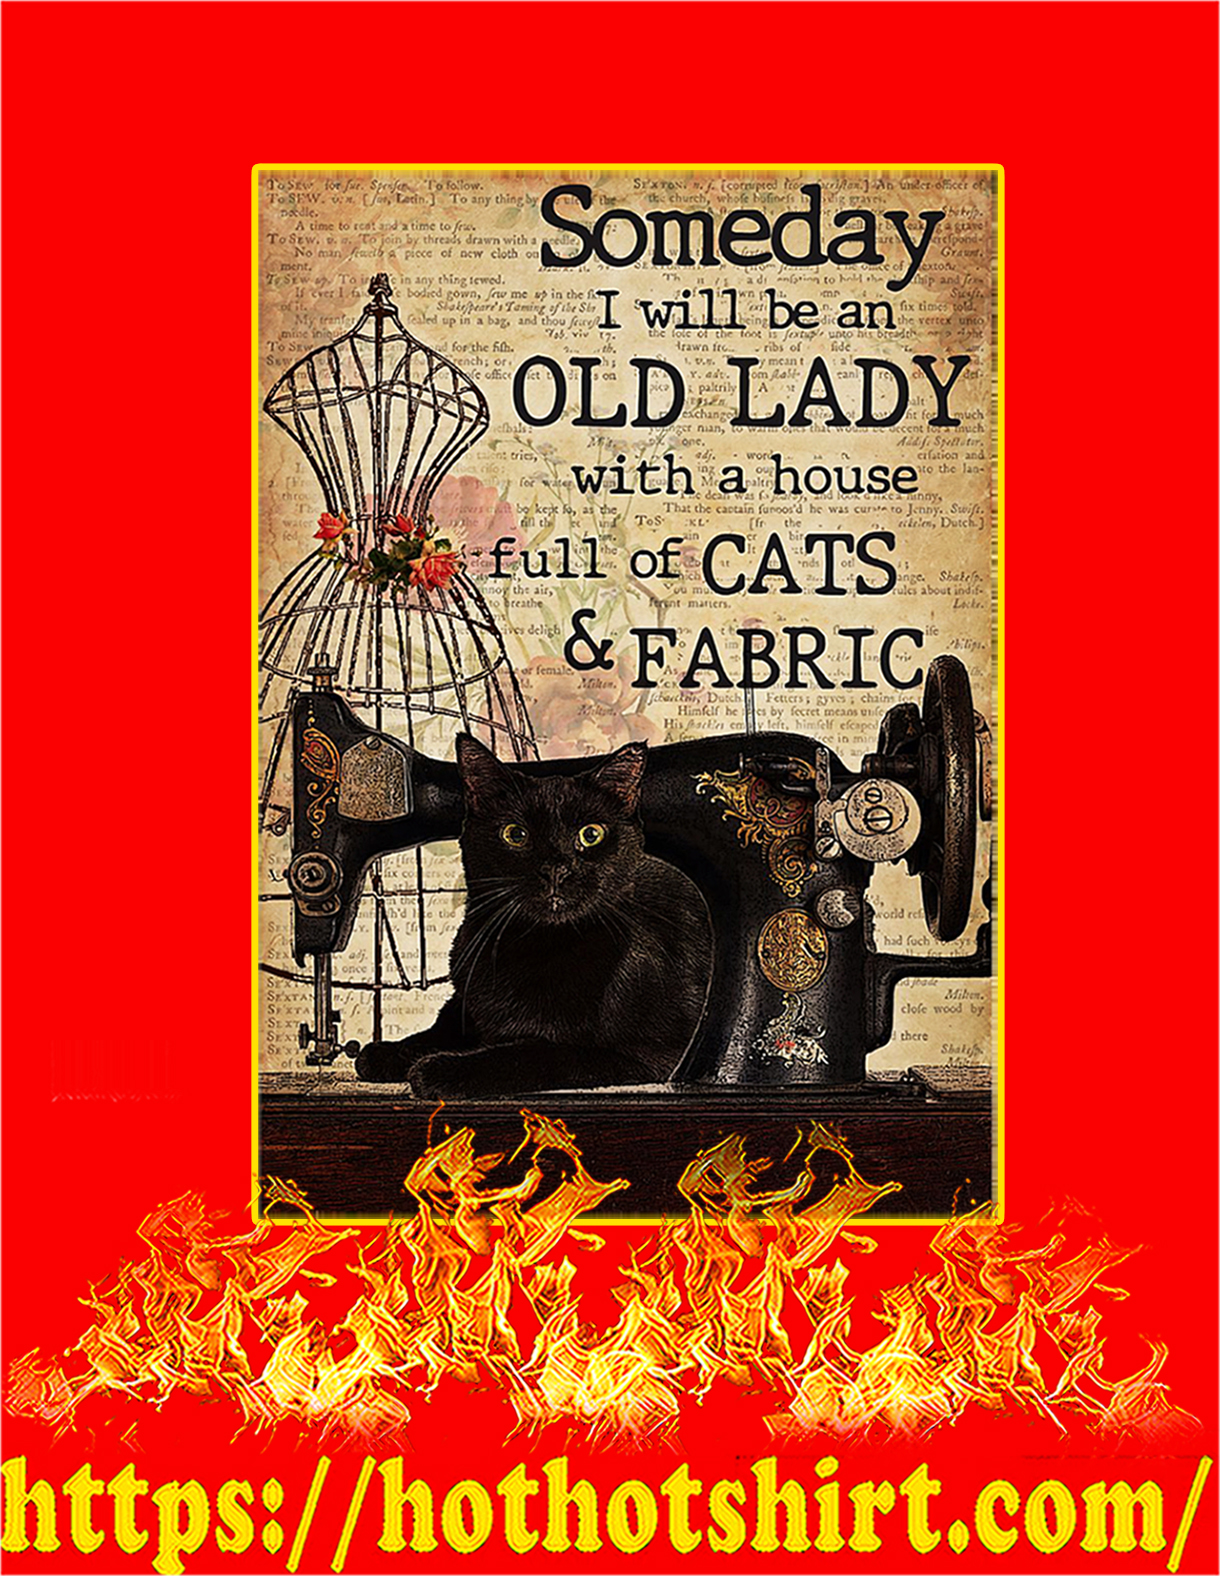 Sewing Someday I will be an old lady with a house full of cats and fabric poster - A4